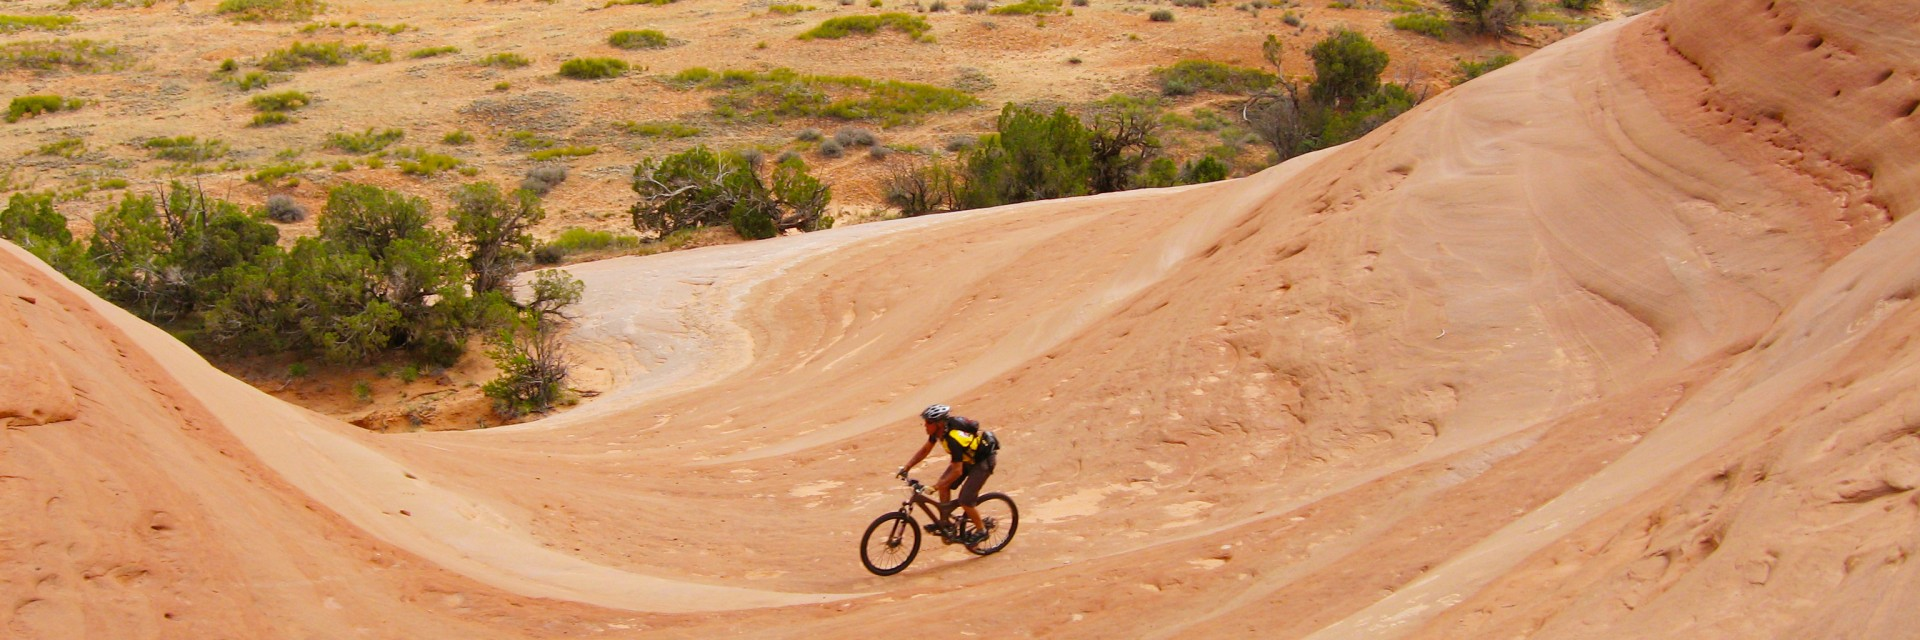 Fun, smooth riding on slickrock rollercoaster section of Amasa Back, Moab UT